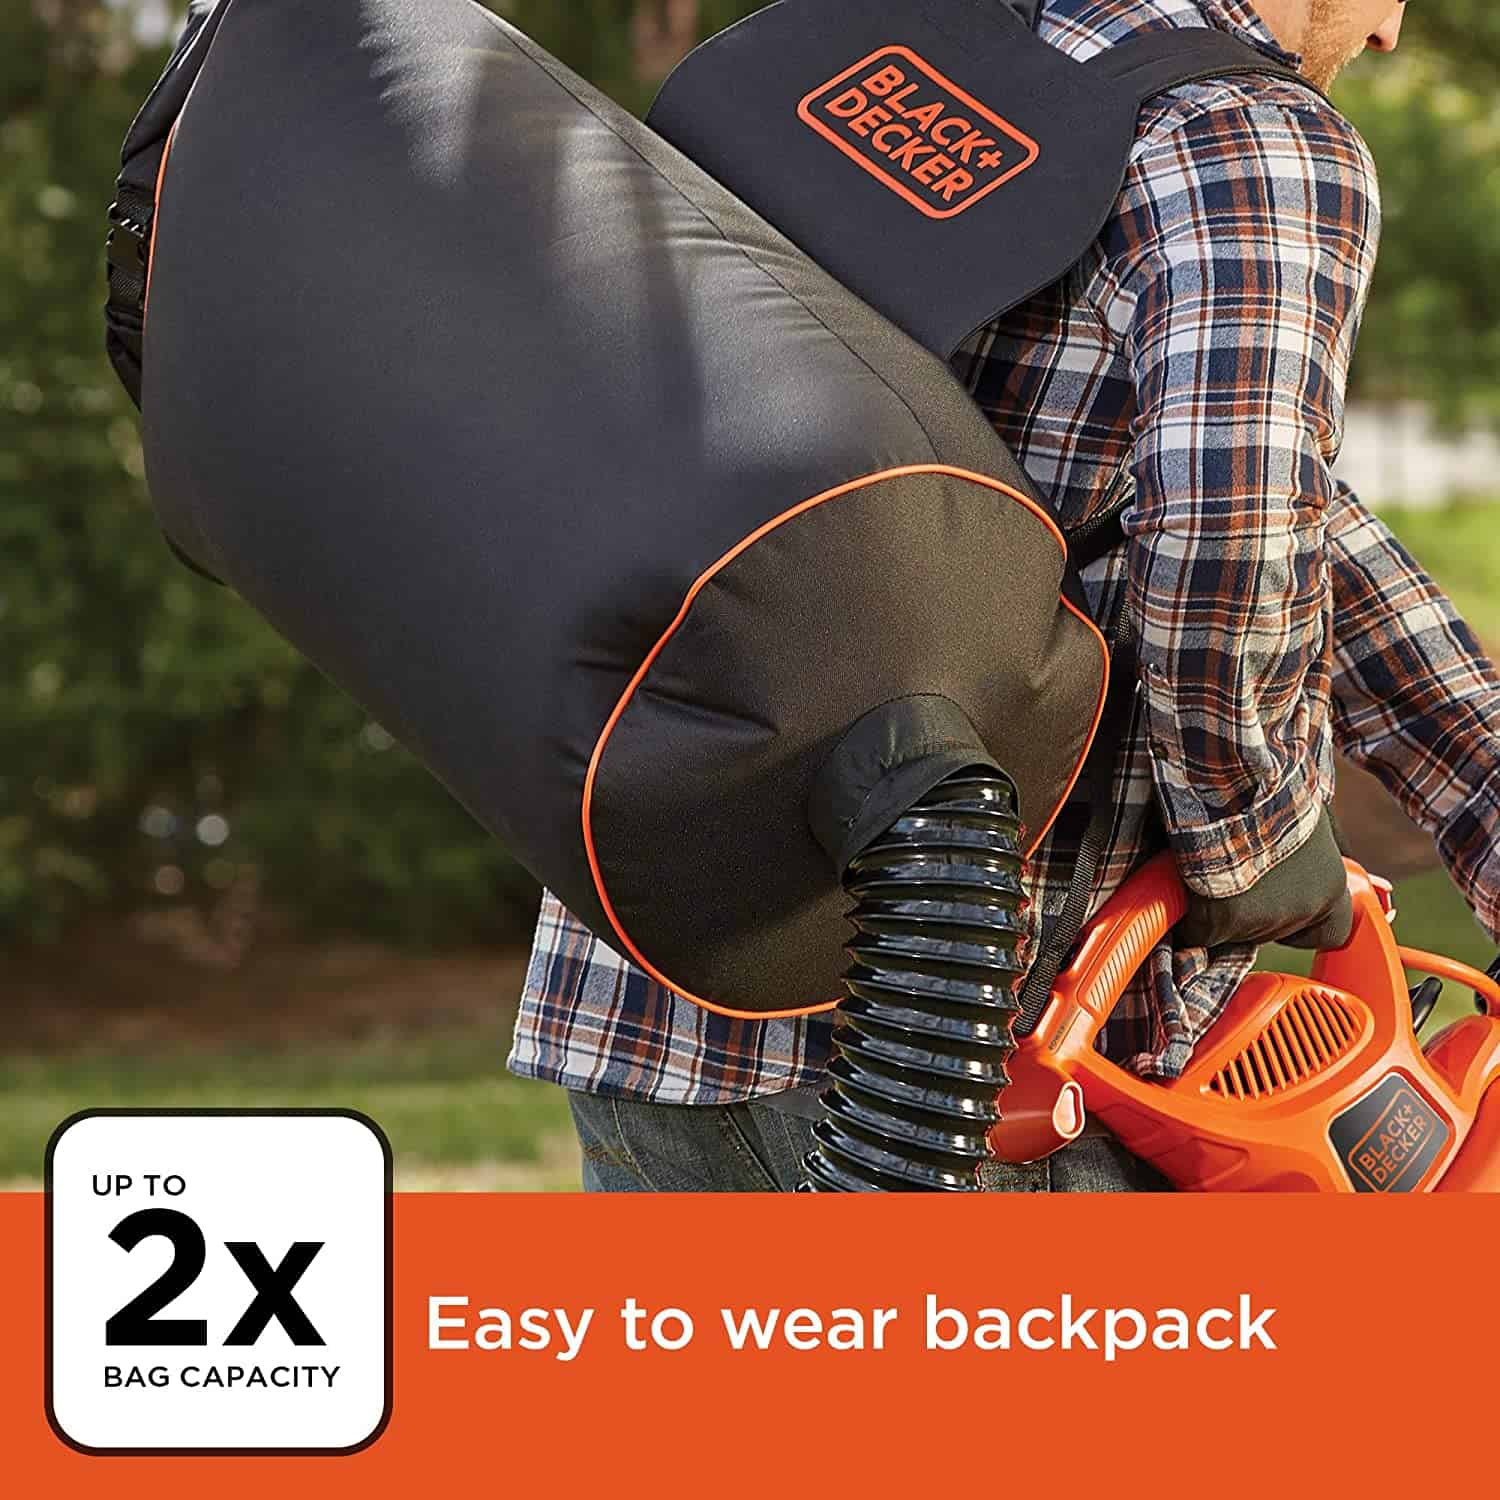 Best Leaf Vacuum and Blower Backpack: BLACK+DECKER BEBL7000